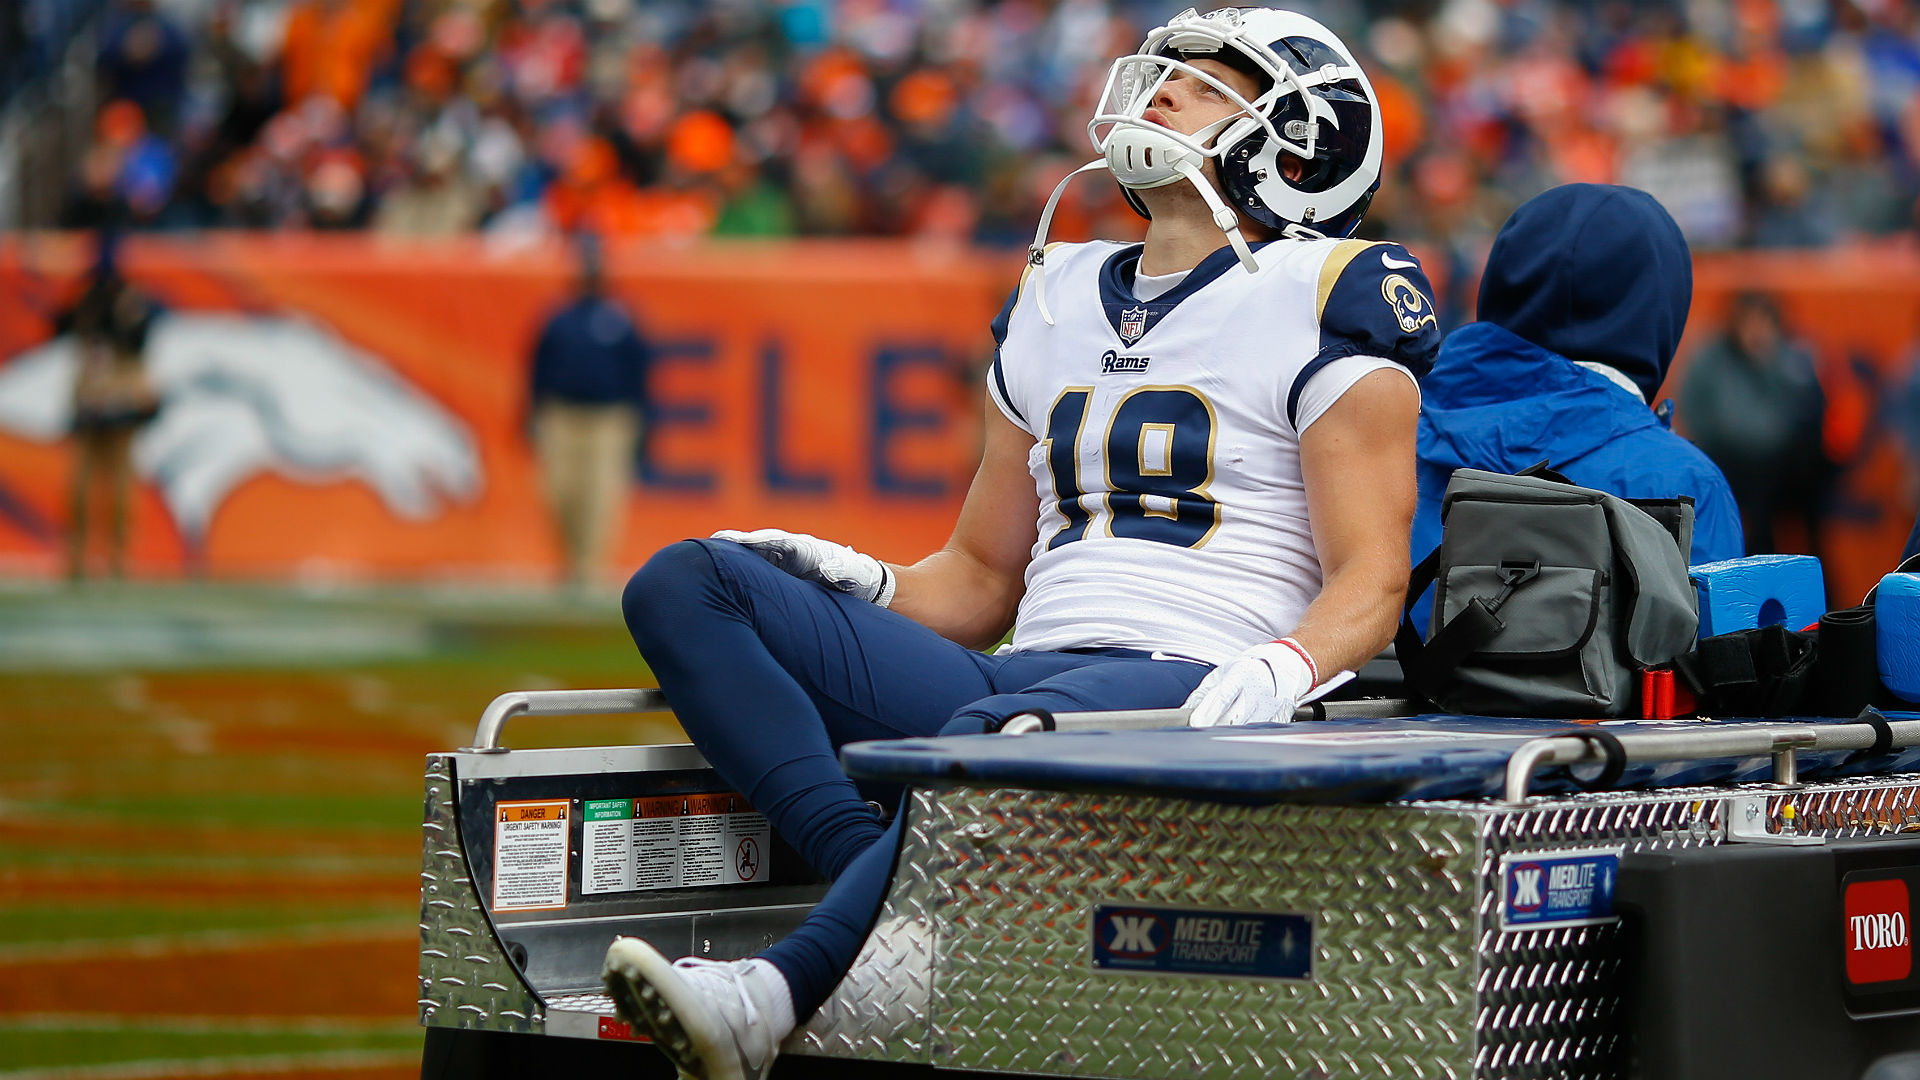 L.A. Rams WR Cooper Kupp has sprained knee